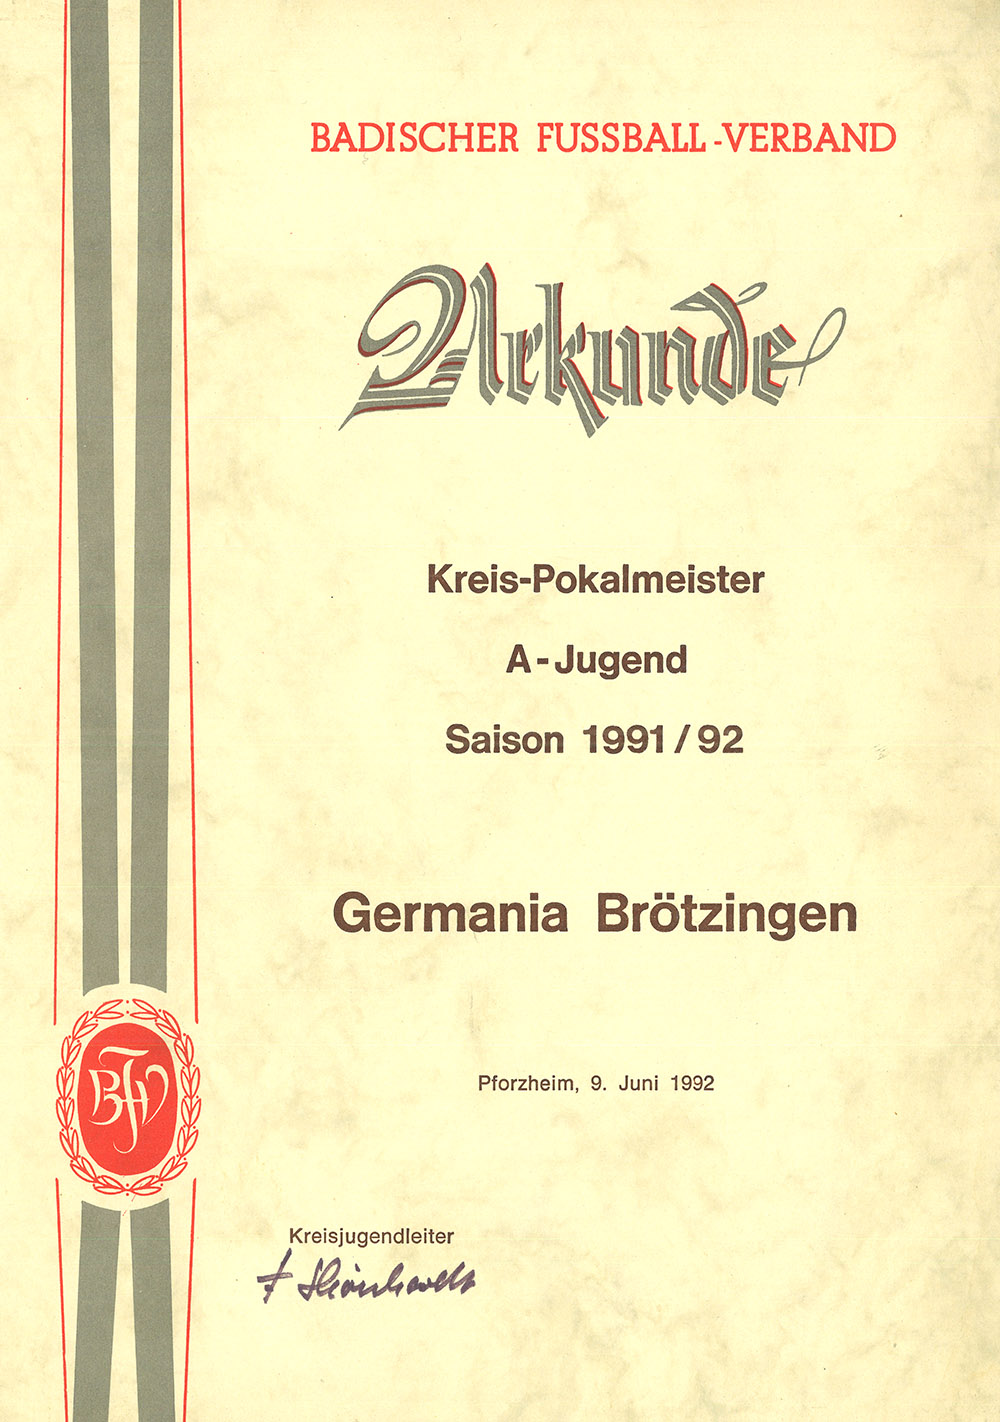 Germania Broetzingen010